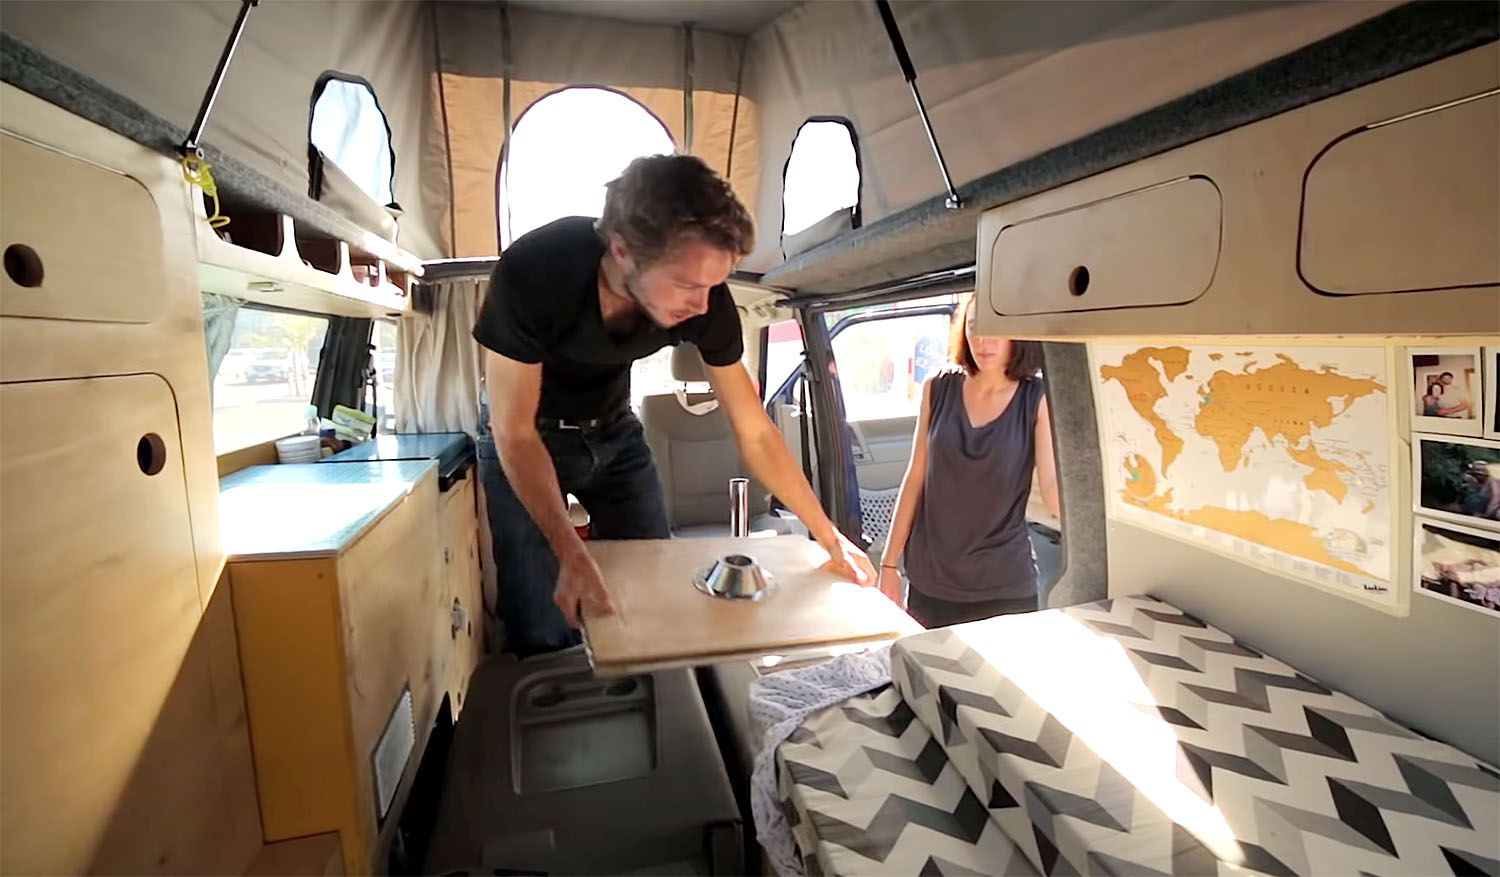 DIY van conversion projetcapa table becomes bed extension